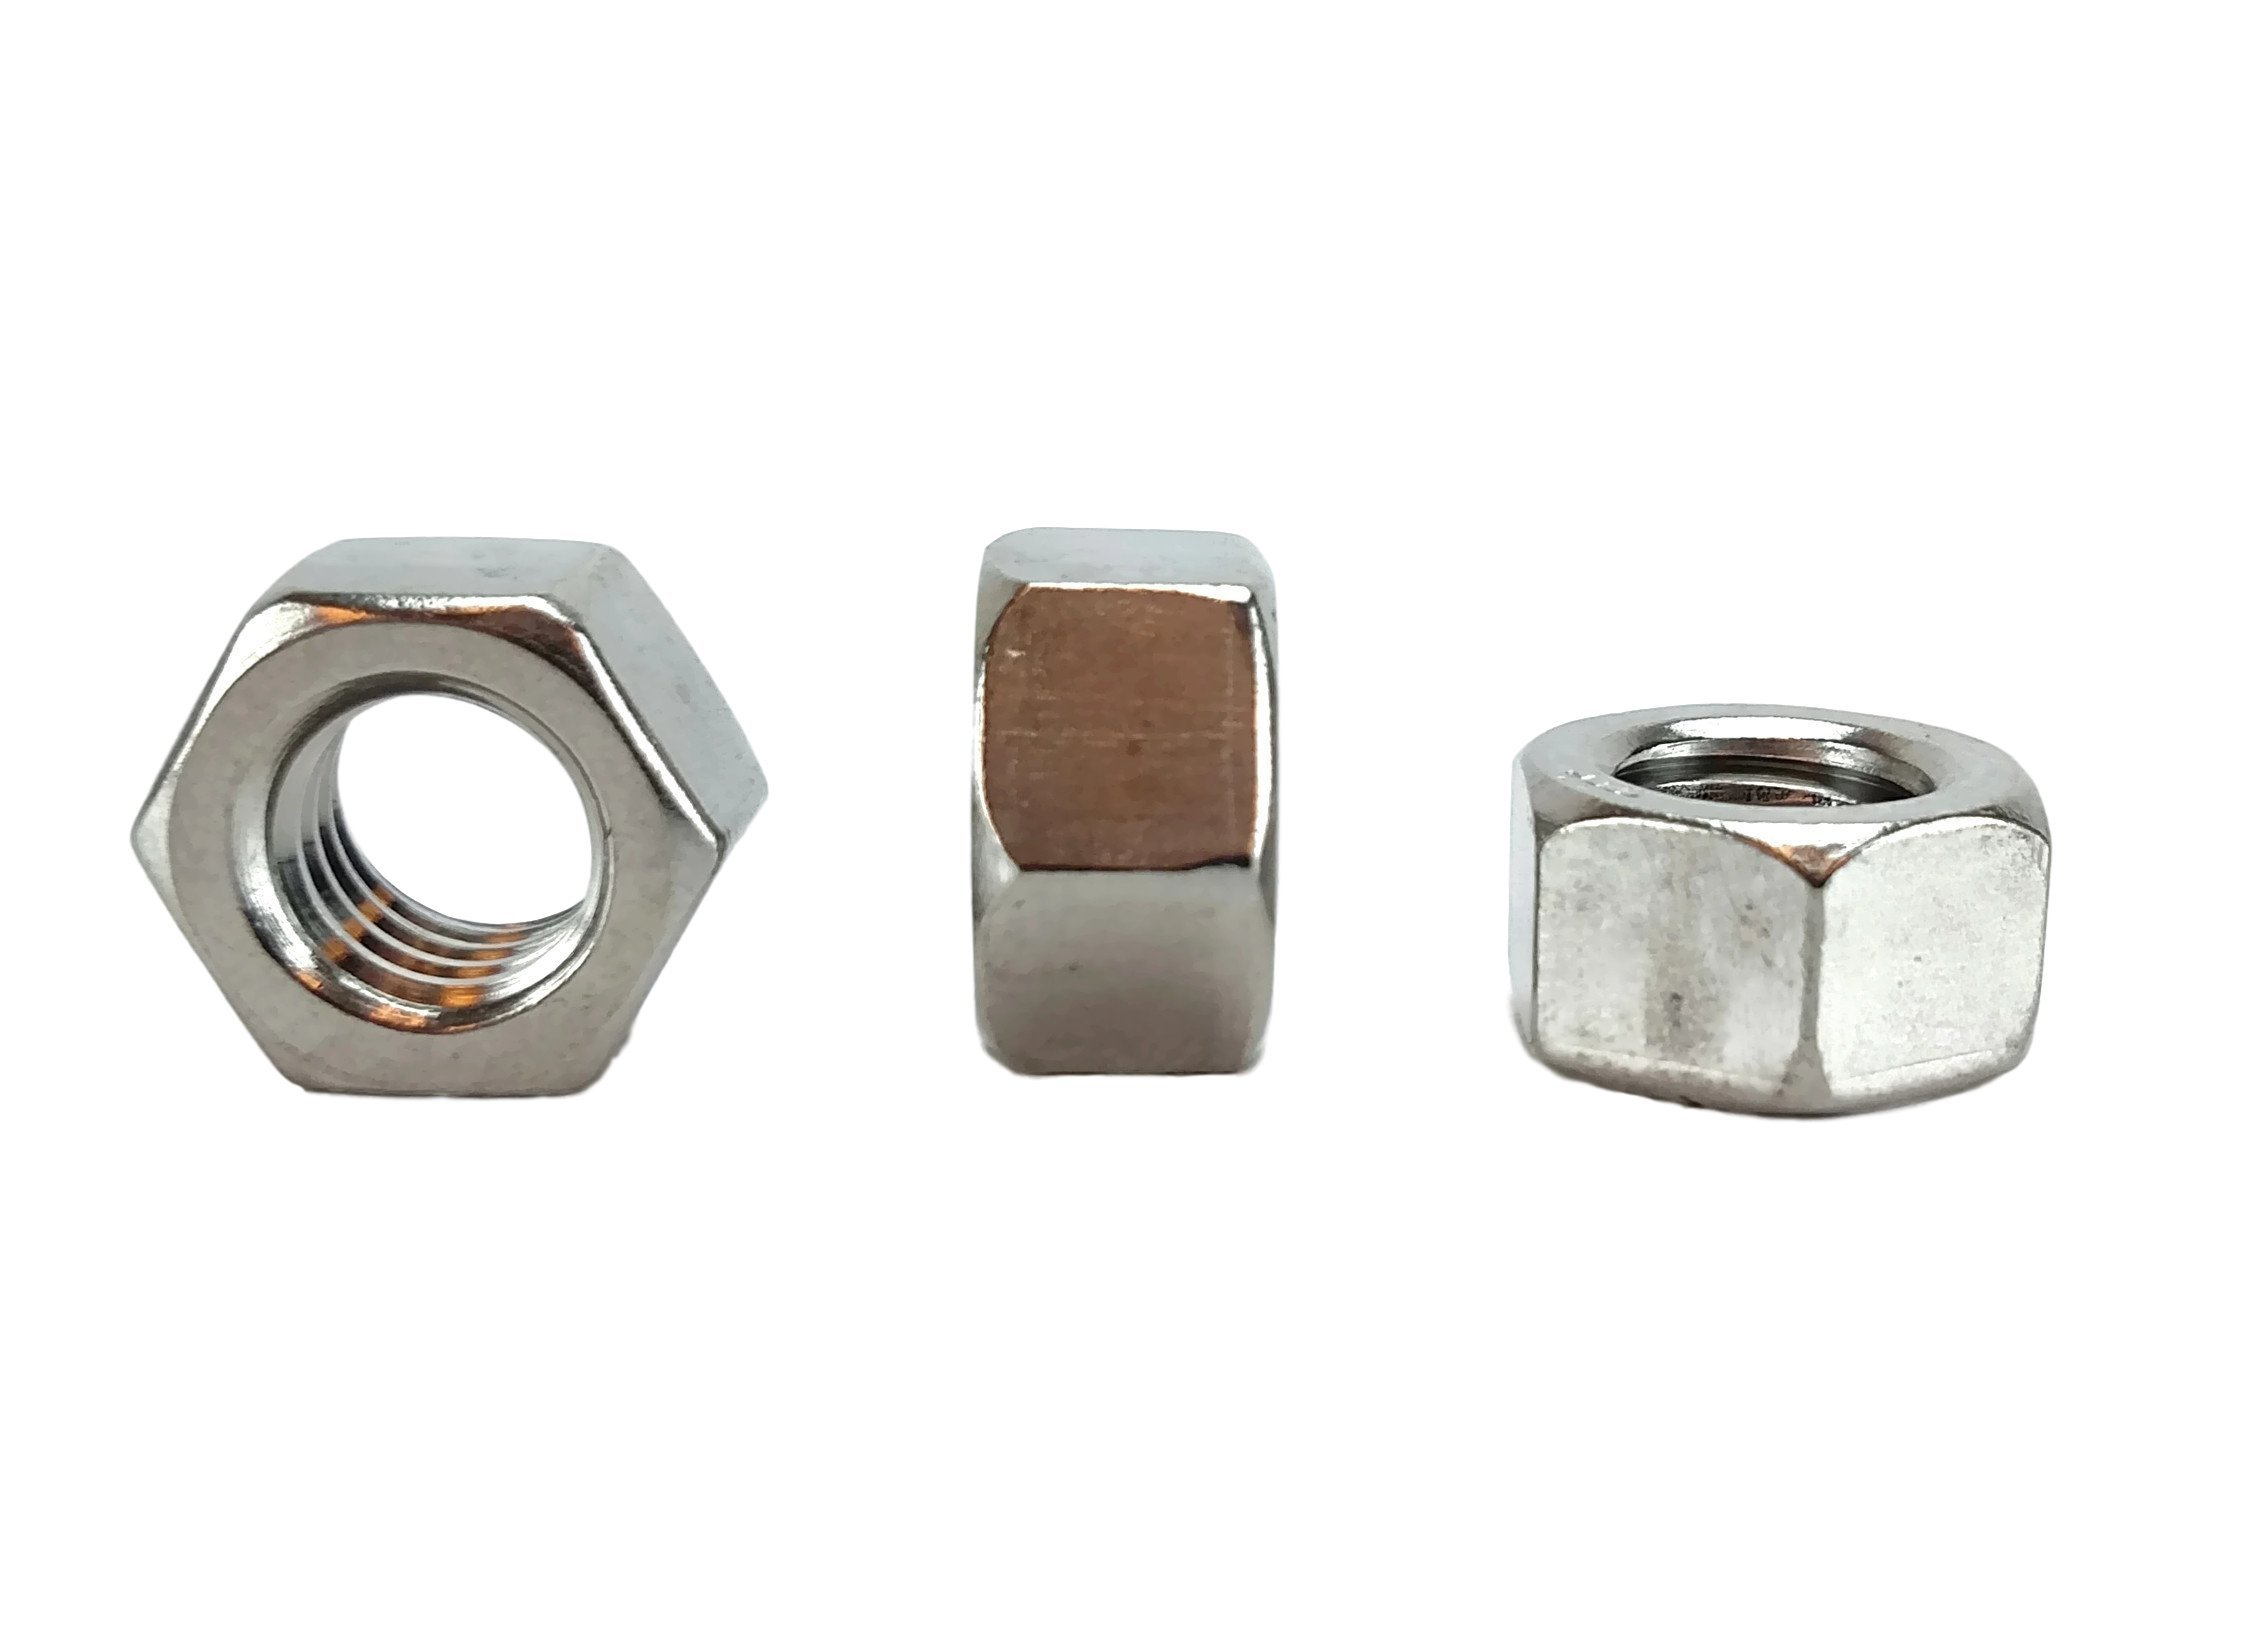 Stainless 3/8-16 USS Hex Nut,(More selections in Listing!) 304 Stainless Steel (3/8-16 HEX NUTS (50 PCS)) by Chenango Supply (Image #2)